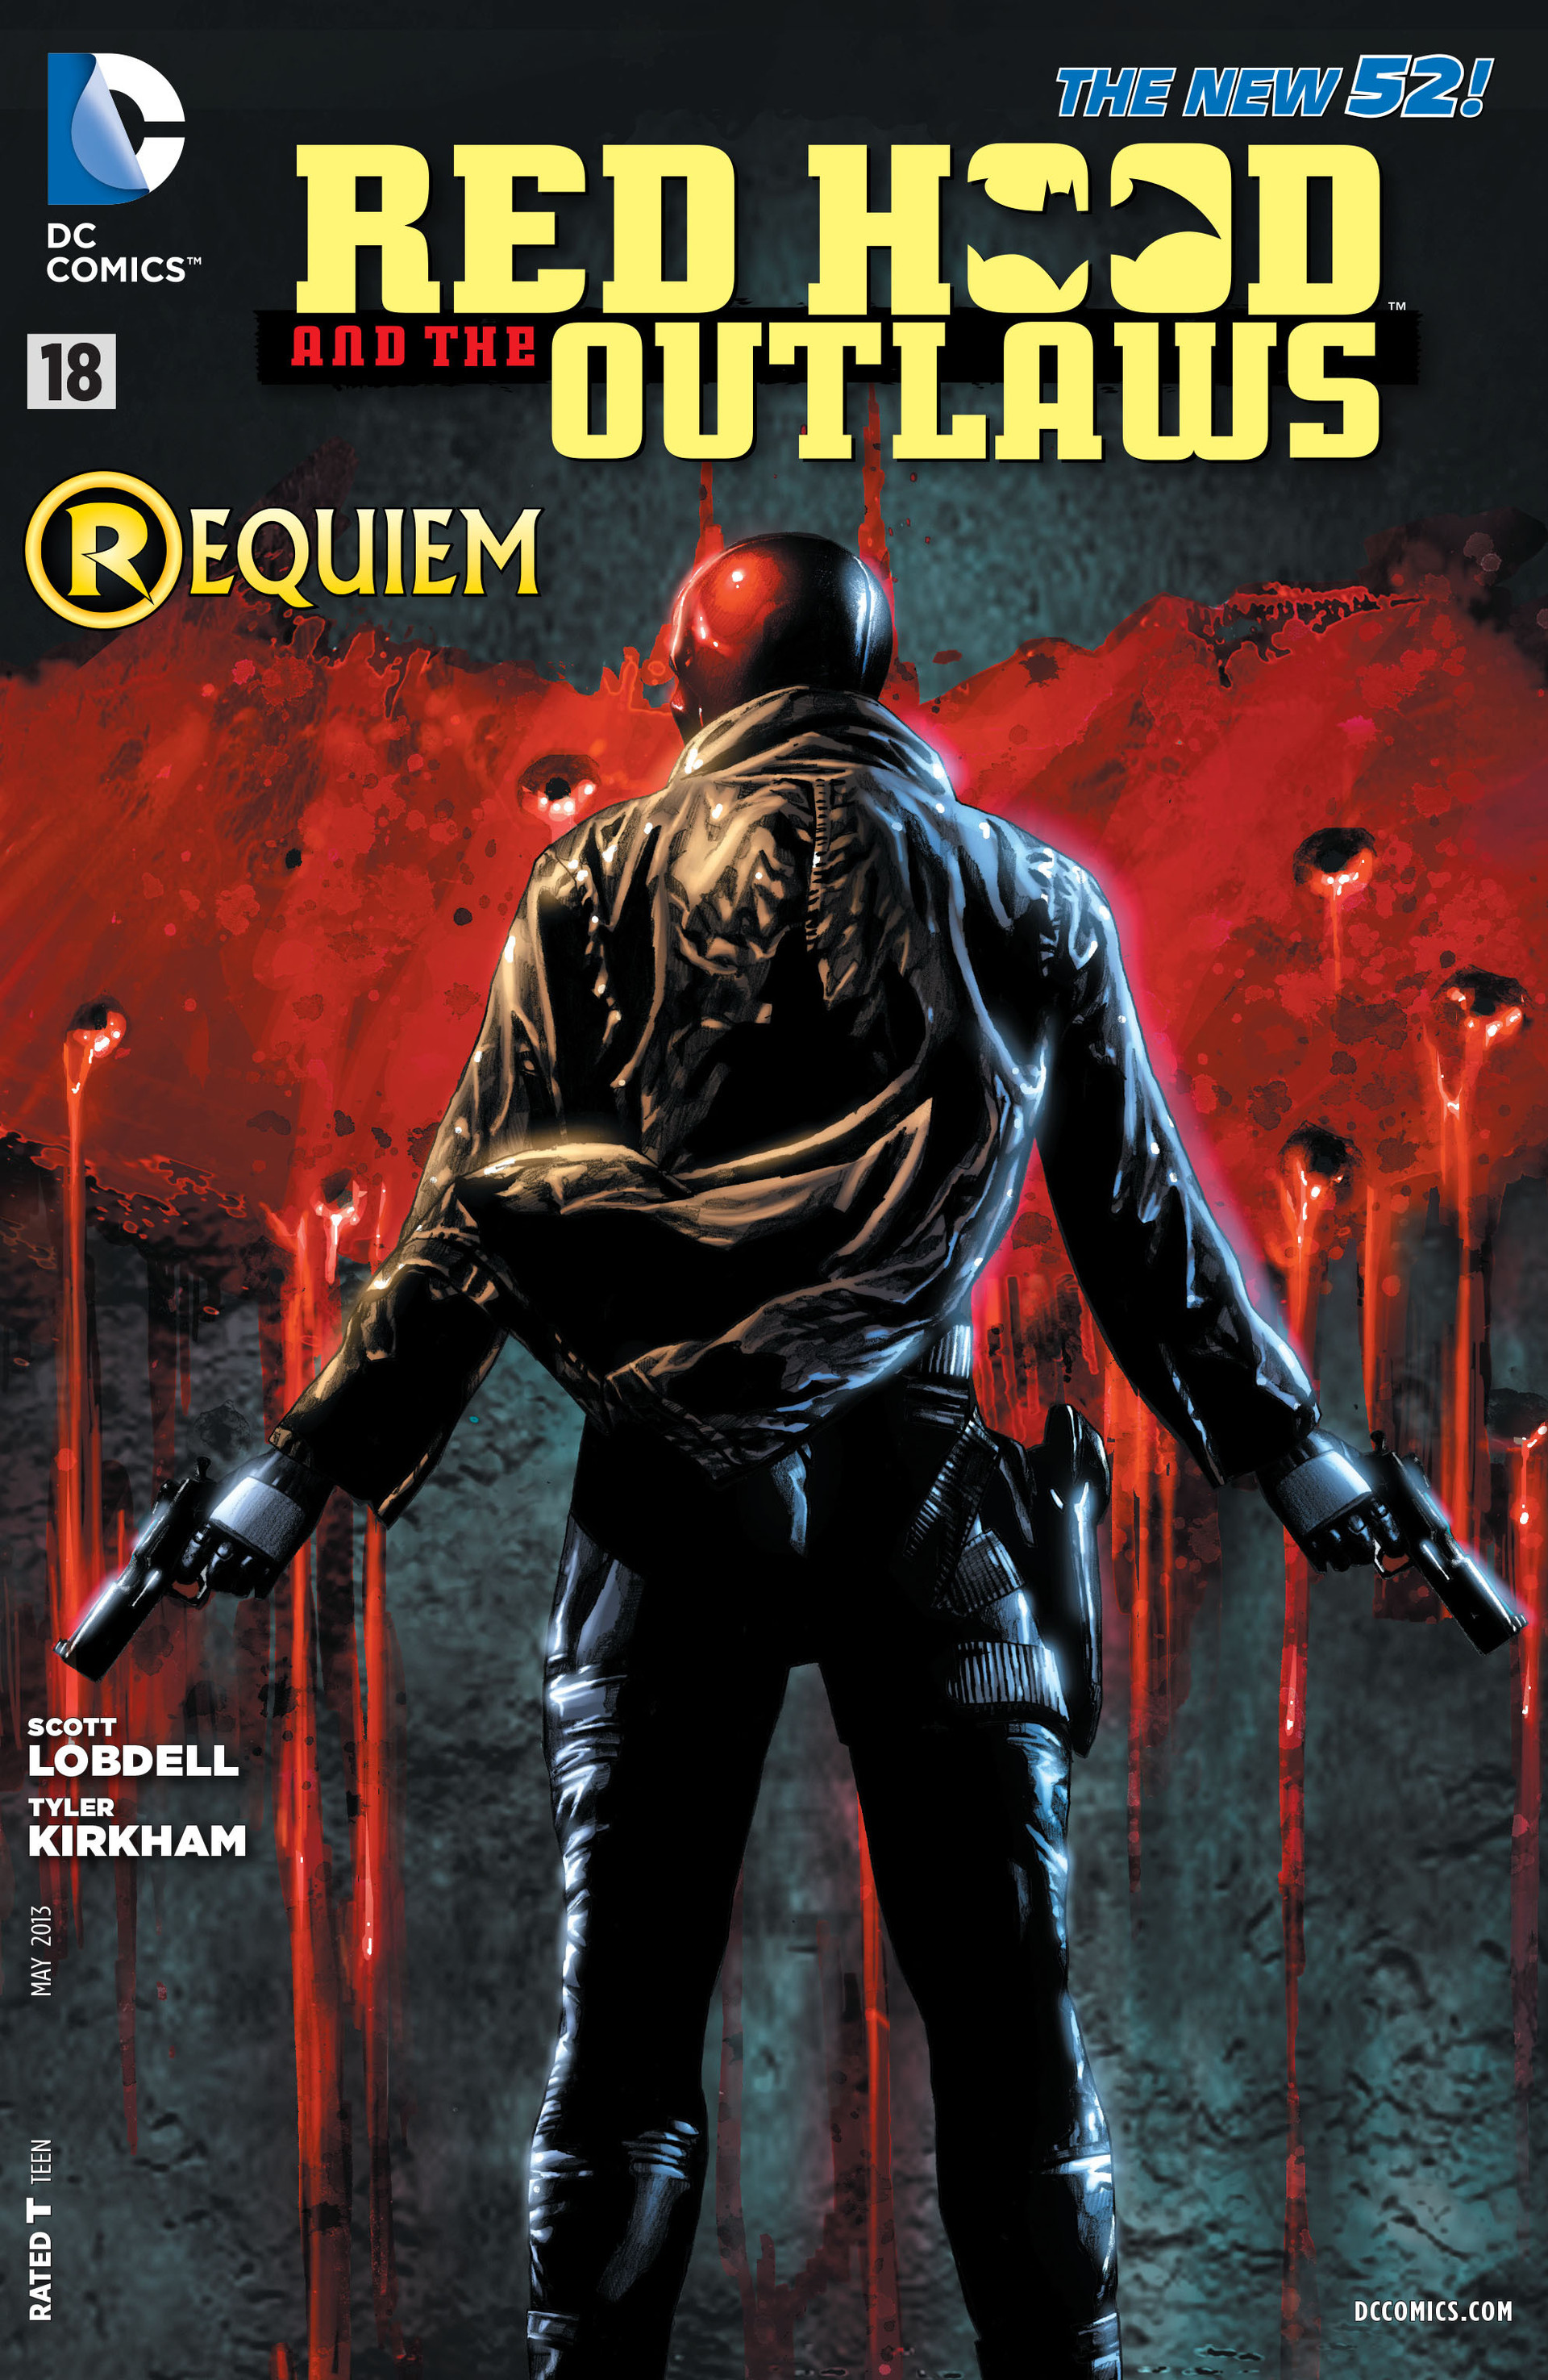 Red Hood And The Outlaws Volume 1 Issue 18 Batman Wiki Fandom